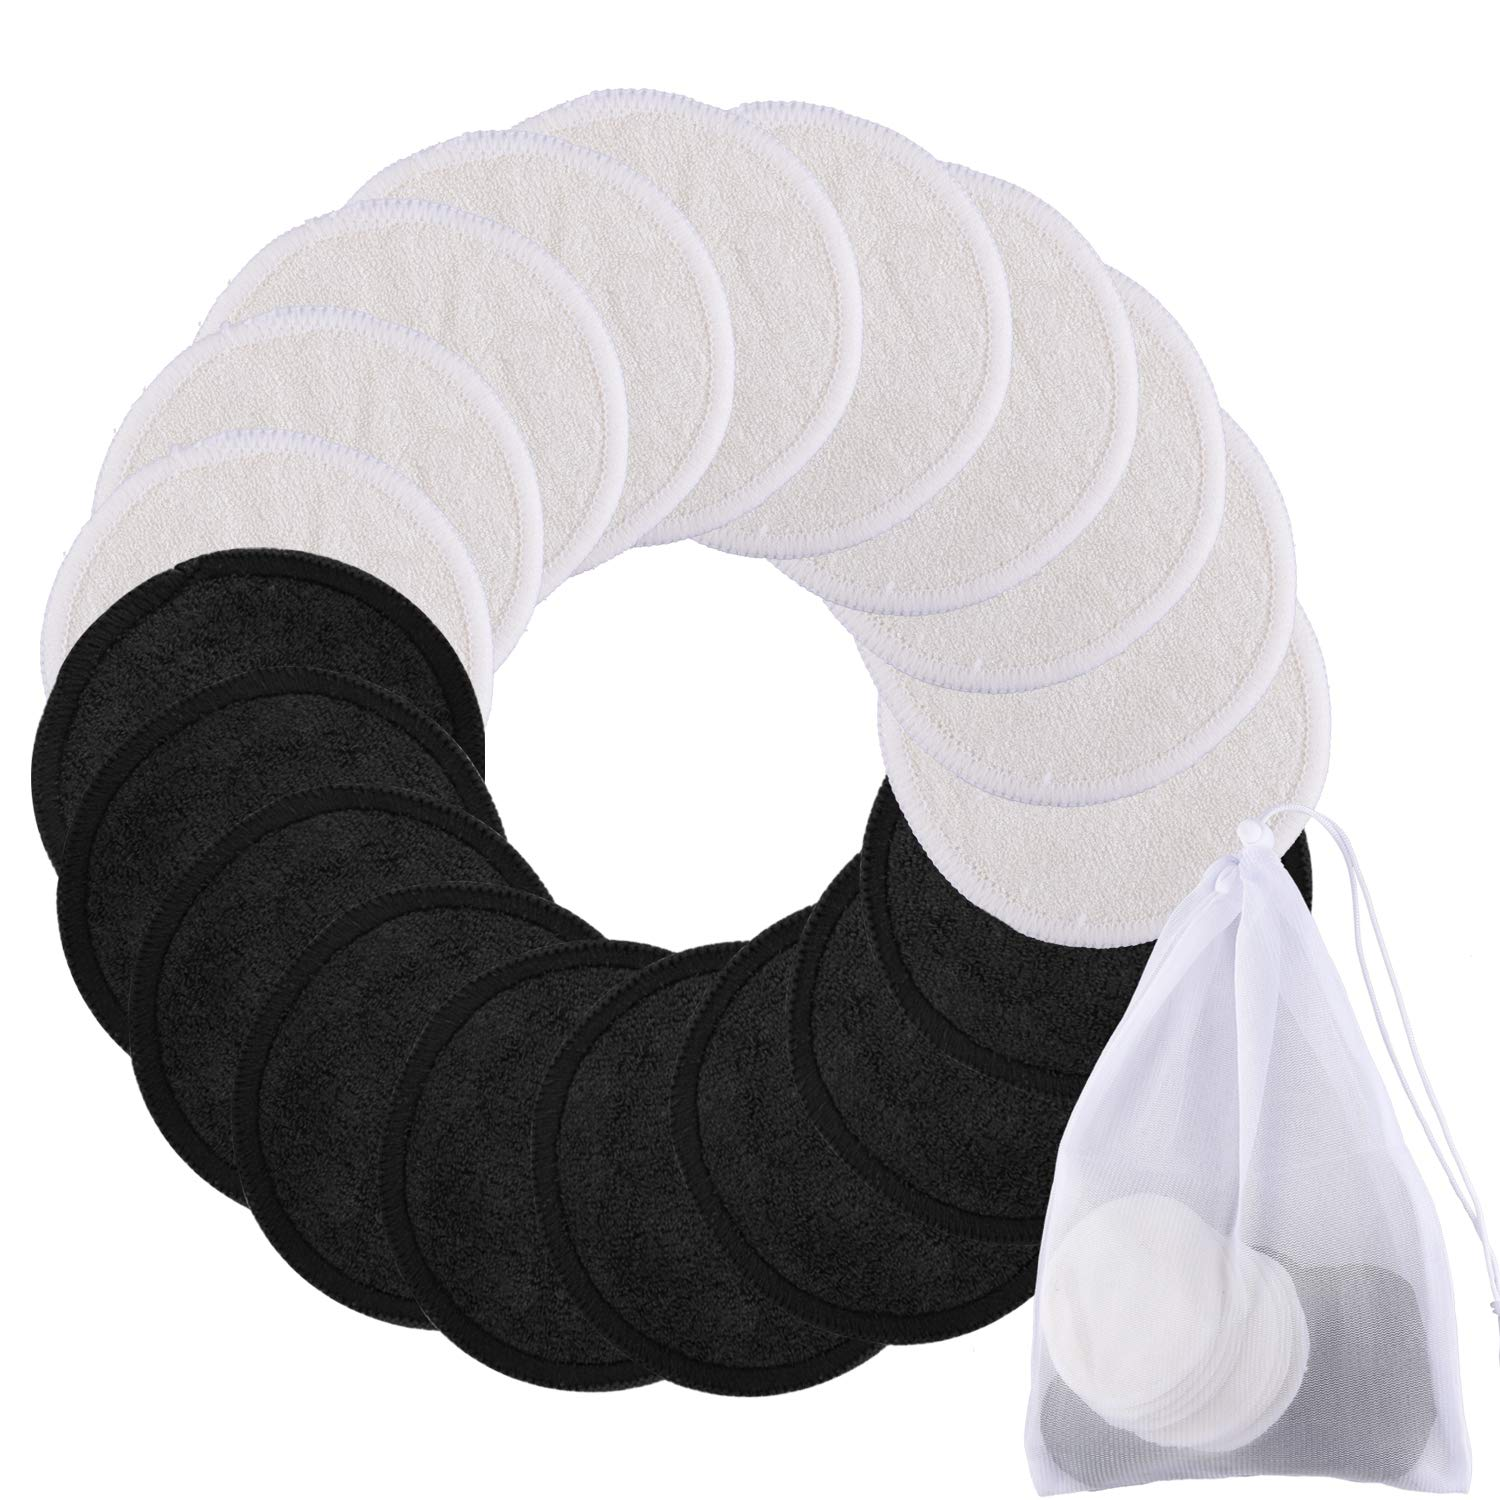 SIQUK 20 Pieces Reusable Cotton Rounds Makeup Remover Pads 2 Layers Washable Organic Bamboo Facial Cleansing Pads with Laundry Bag, Black and White